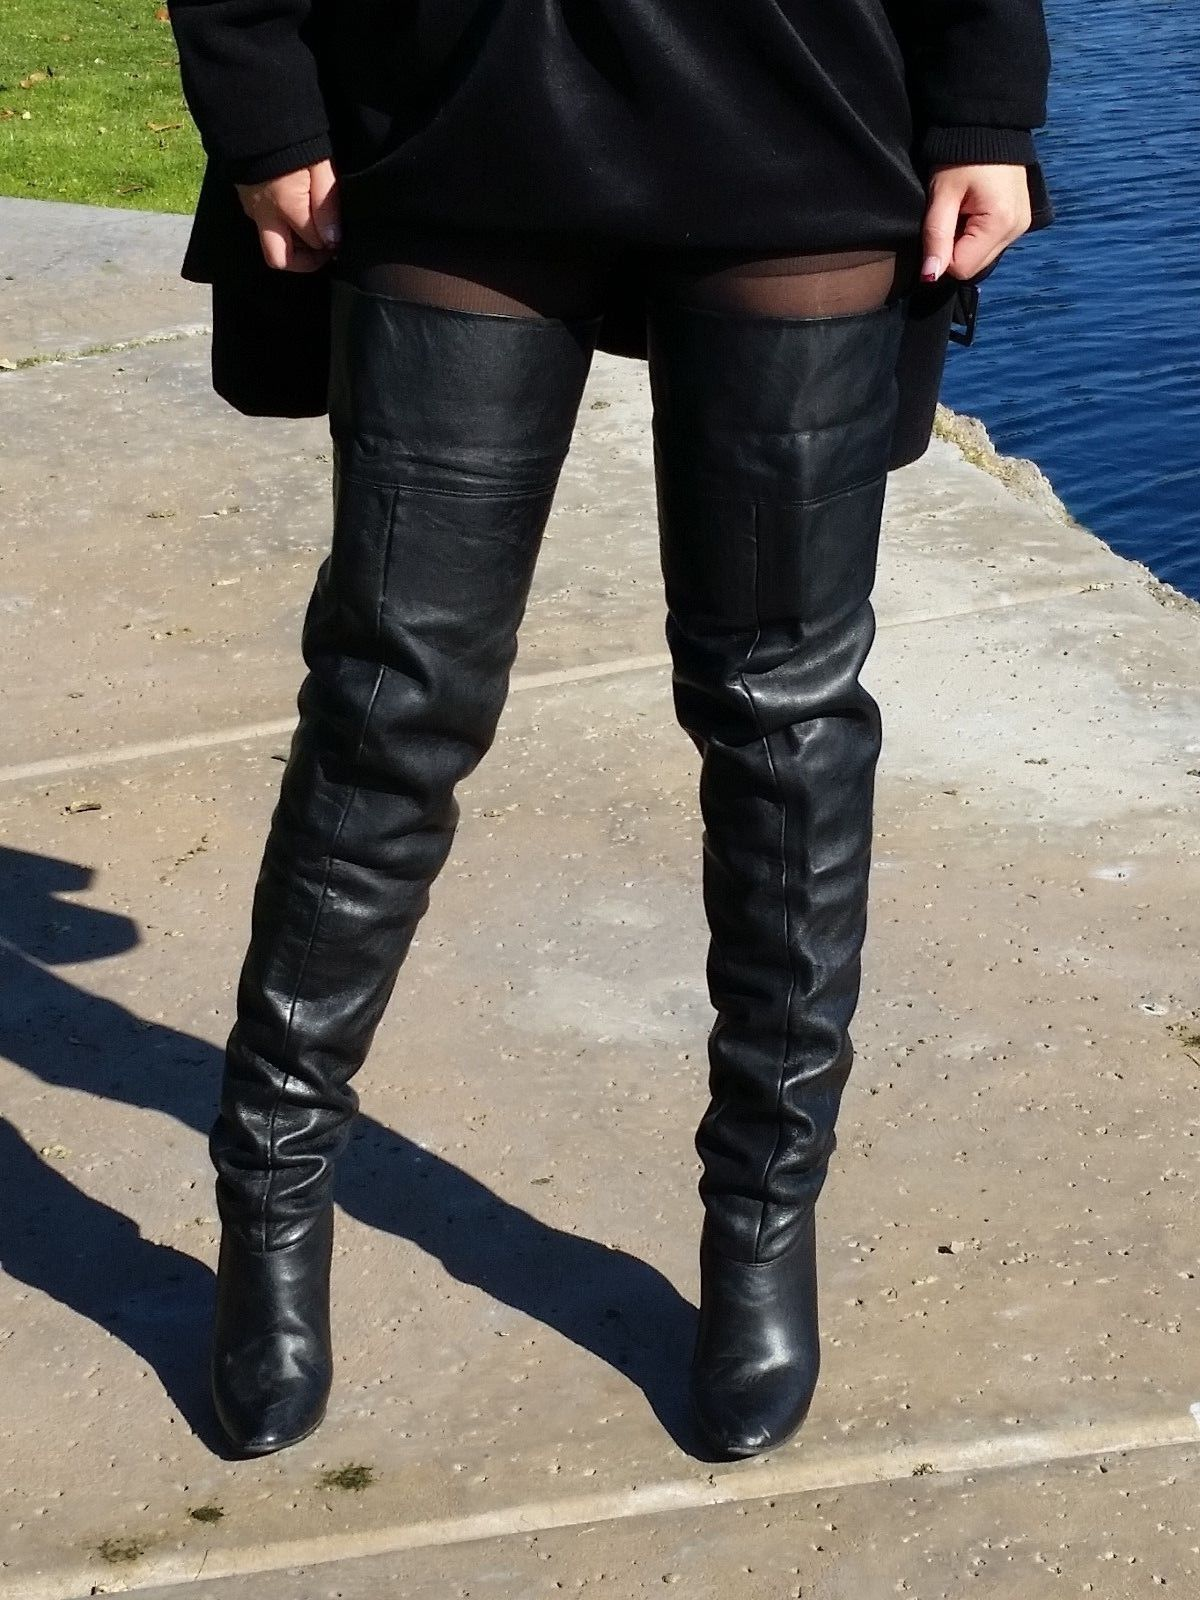 ebay leather vintage pair crotch high boots finally